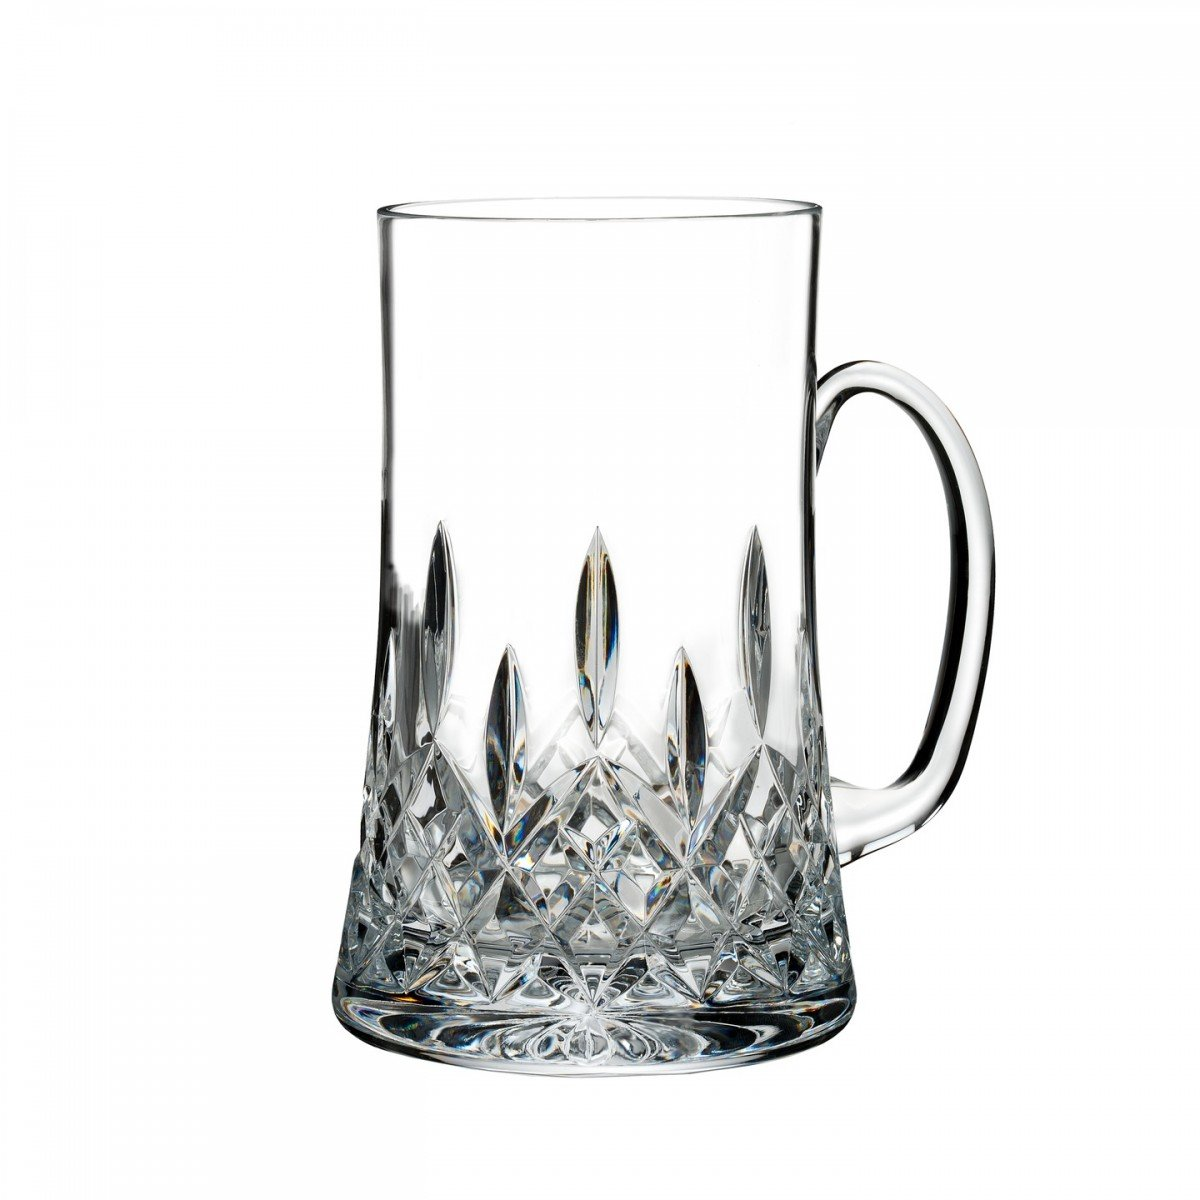 Waterford Crystal Lismore Beer Mug - Holds 20oz. Of Liquid